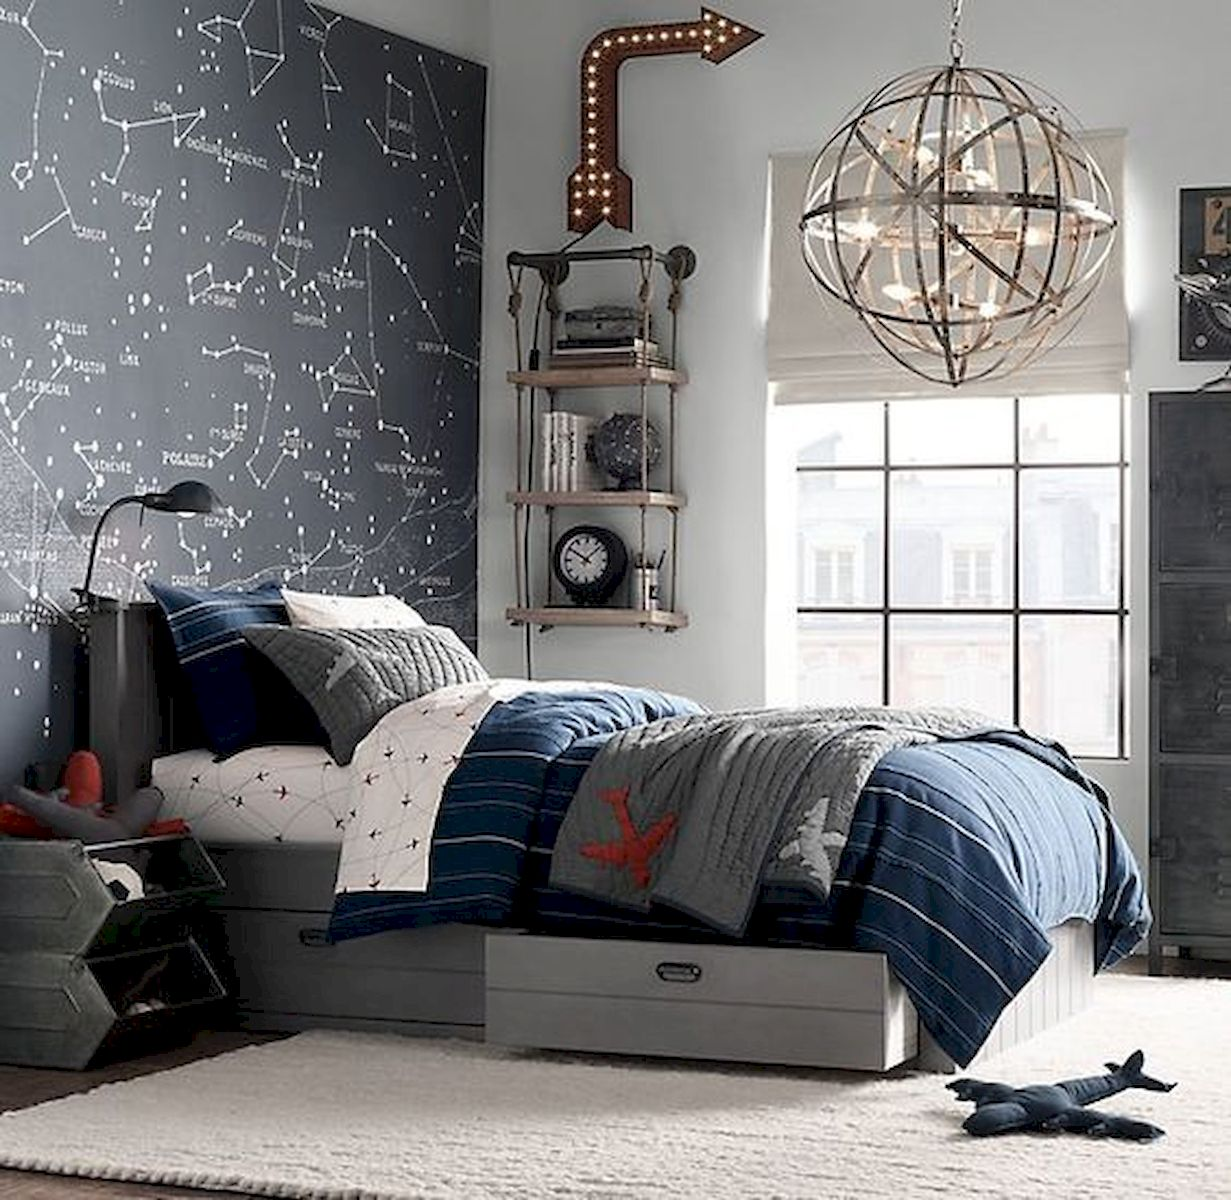 45 Cool Boys Bedroom Ideas to Try at Home (19) - house8055.com